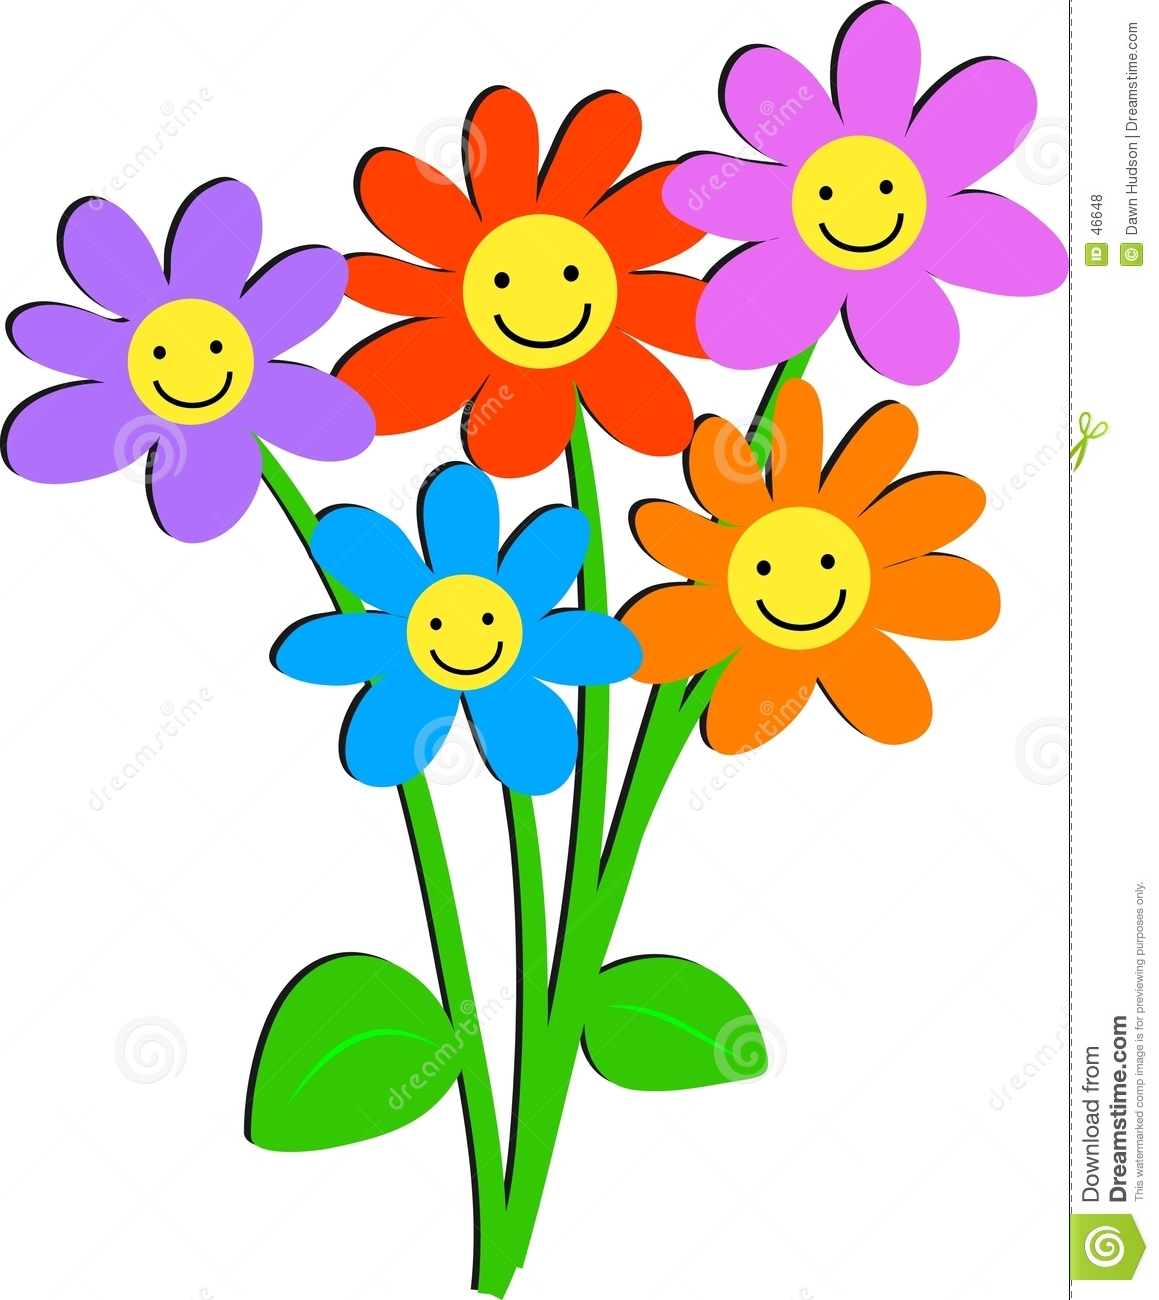 Free clipart flowers free download best free clipart flowers on 1159x1300 bunch of flowers clip art free izmirmasajfo